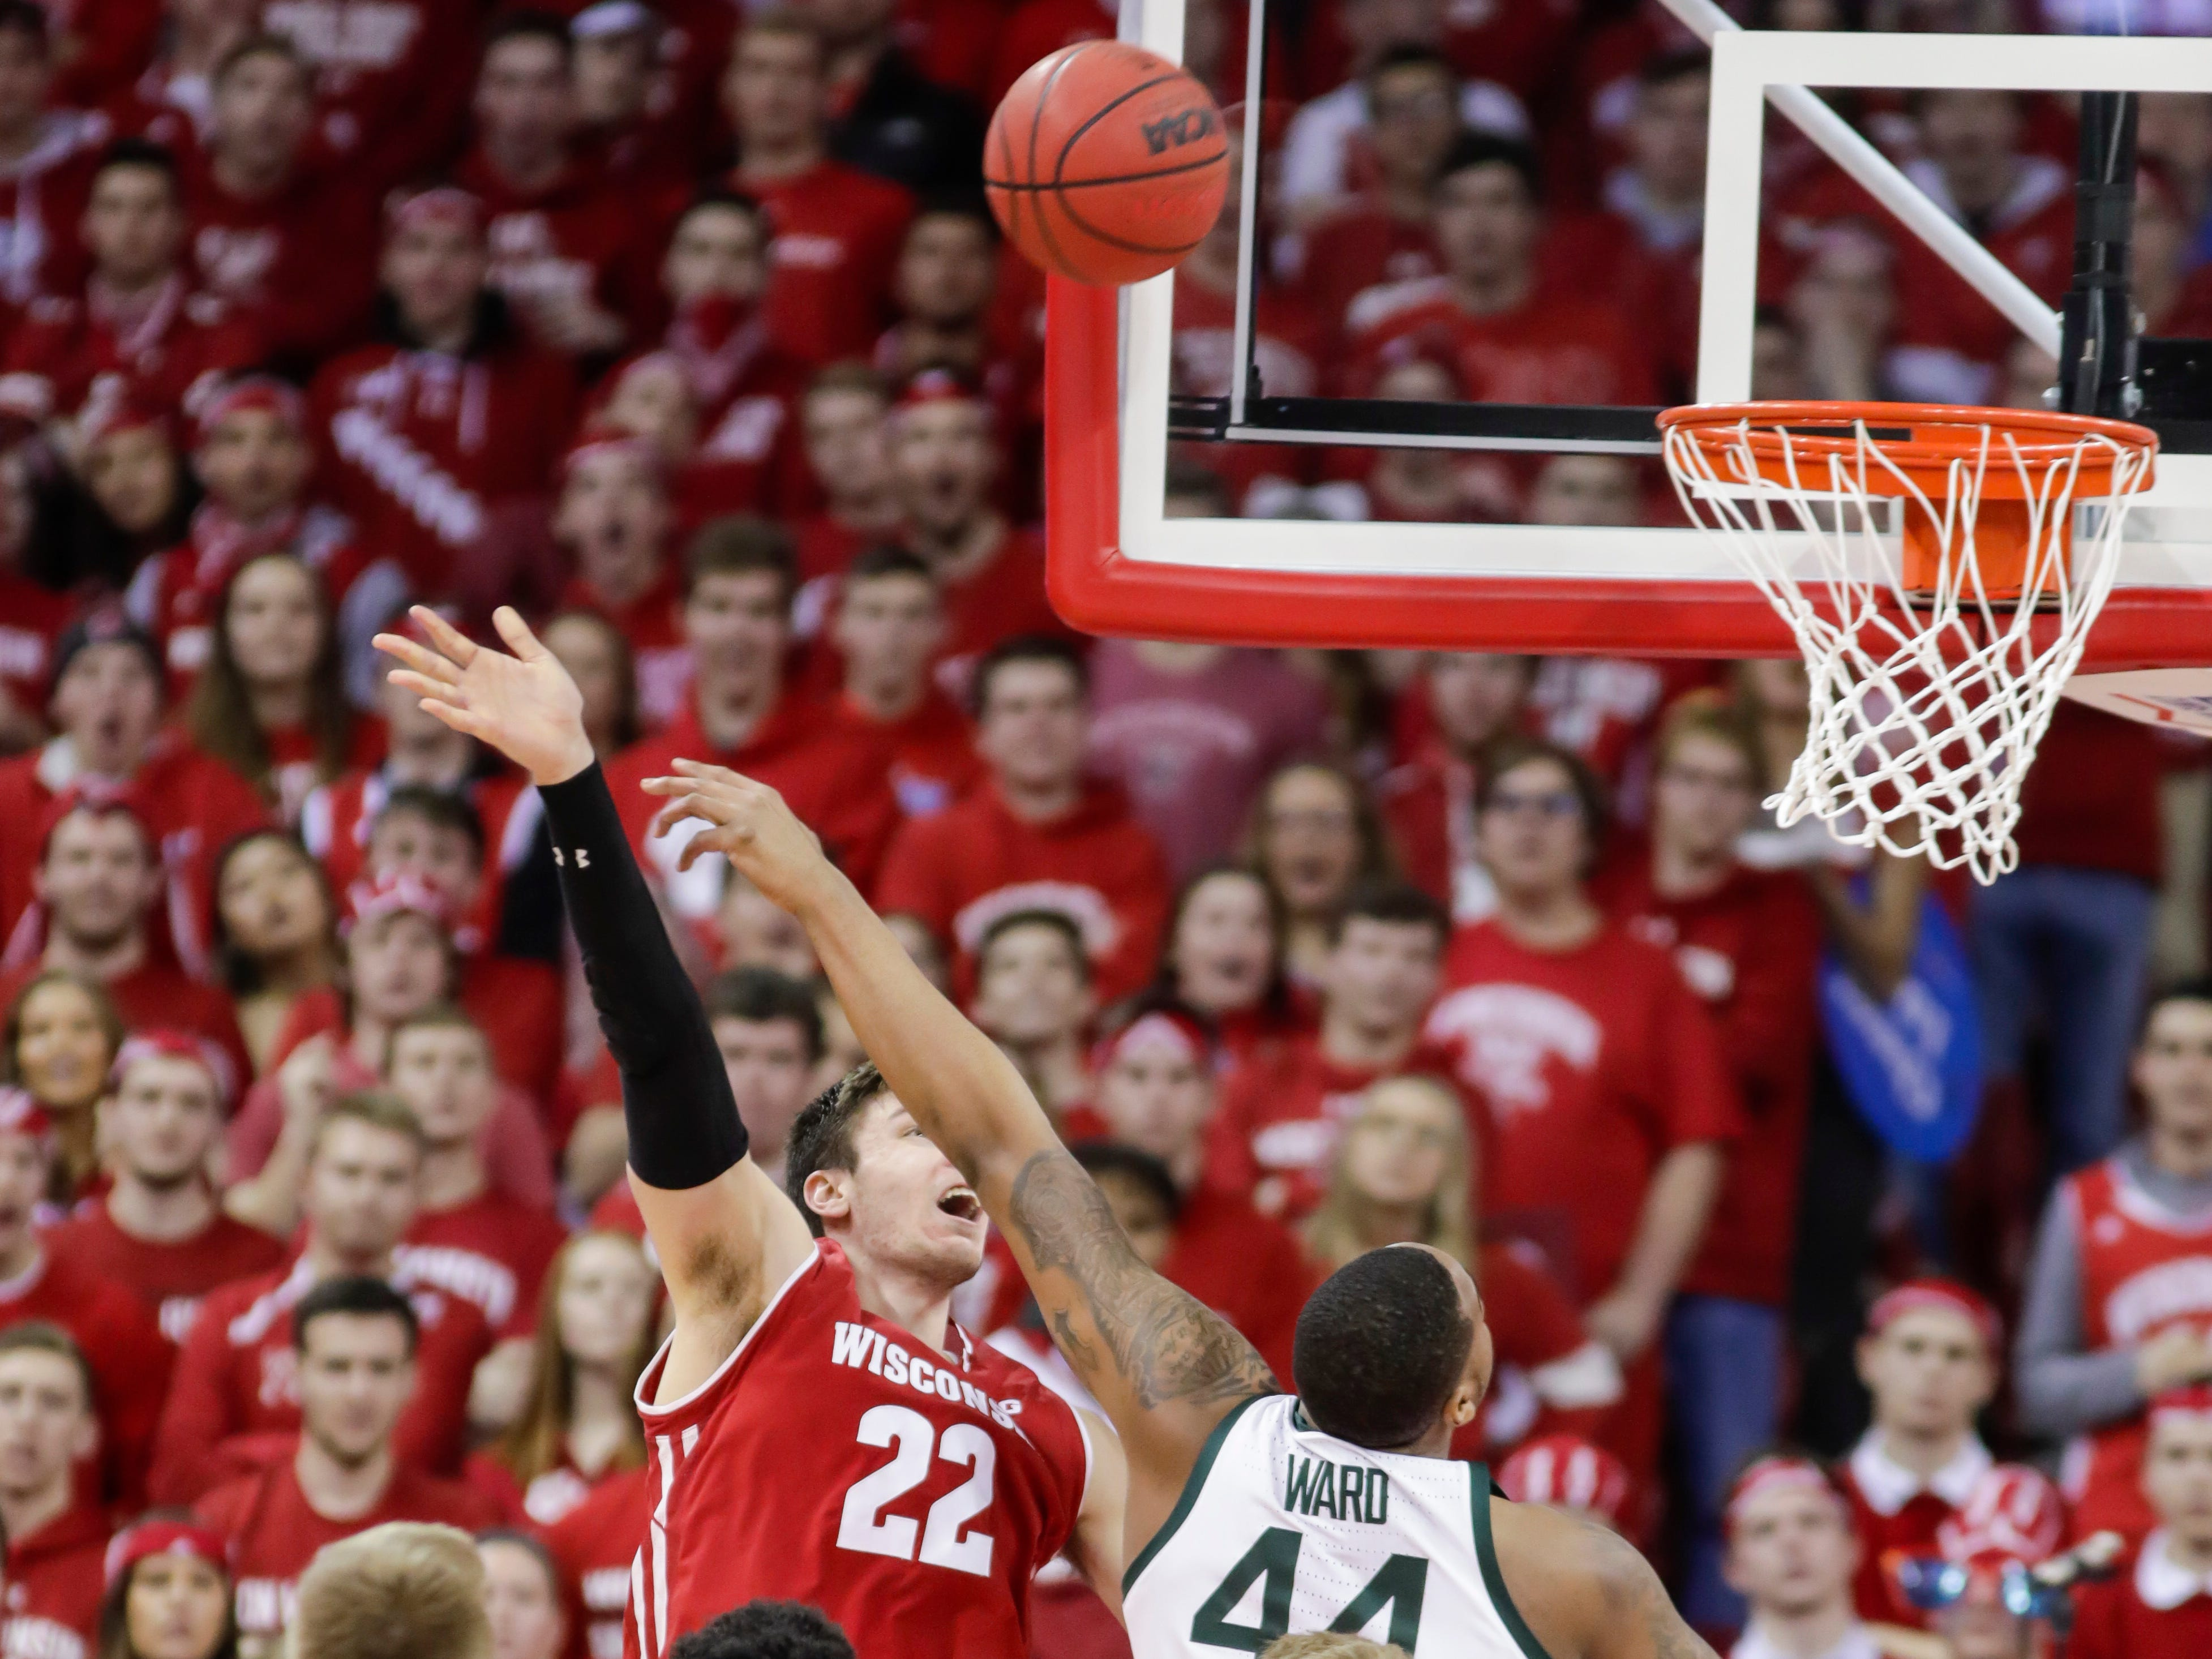 Wisconsin's Ethan Happ (22) and Michigan States's Nick Ward (44) watch Hap's shot during the first half of an NCAA college basketball game Tuesday, Feb. 12, 2019, in Madison, Wis.